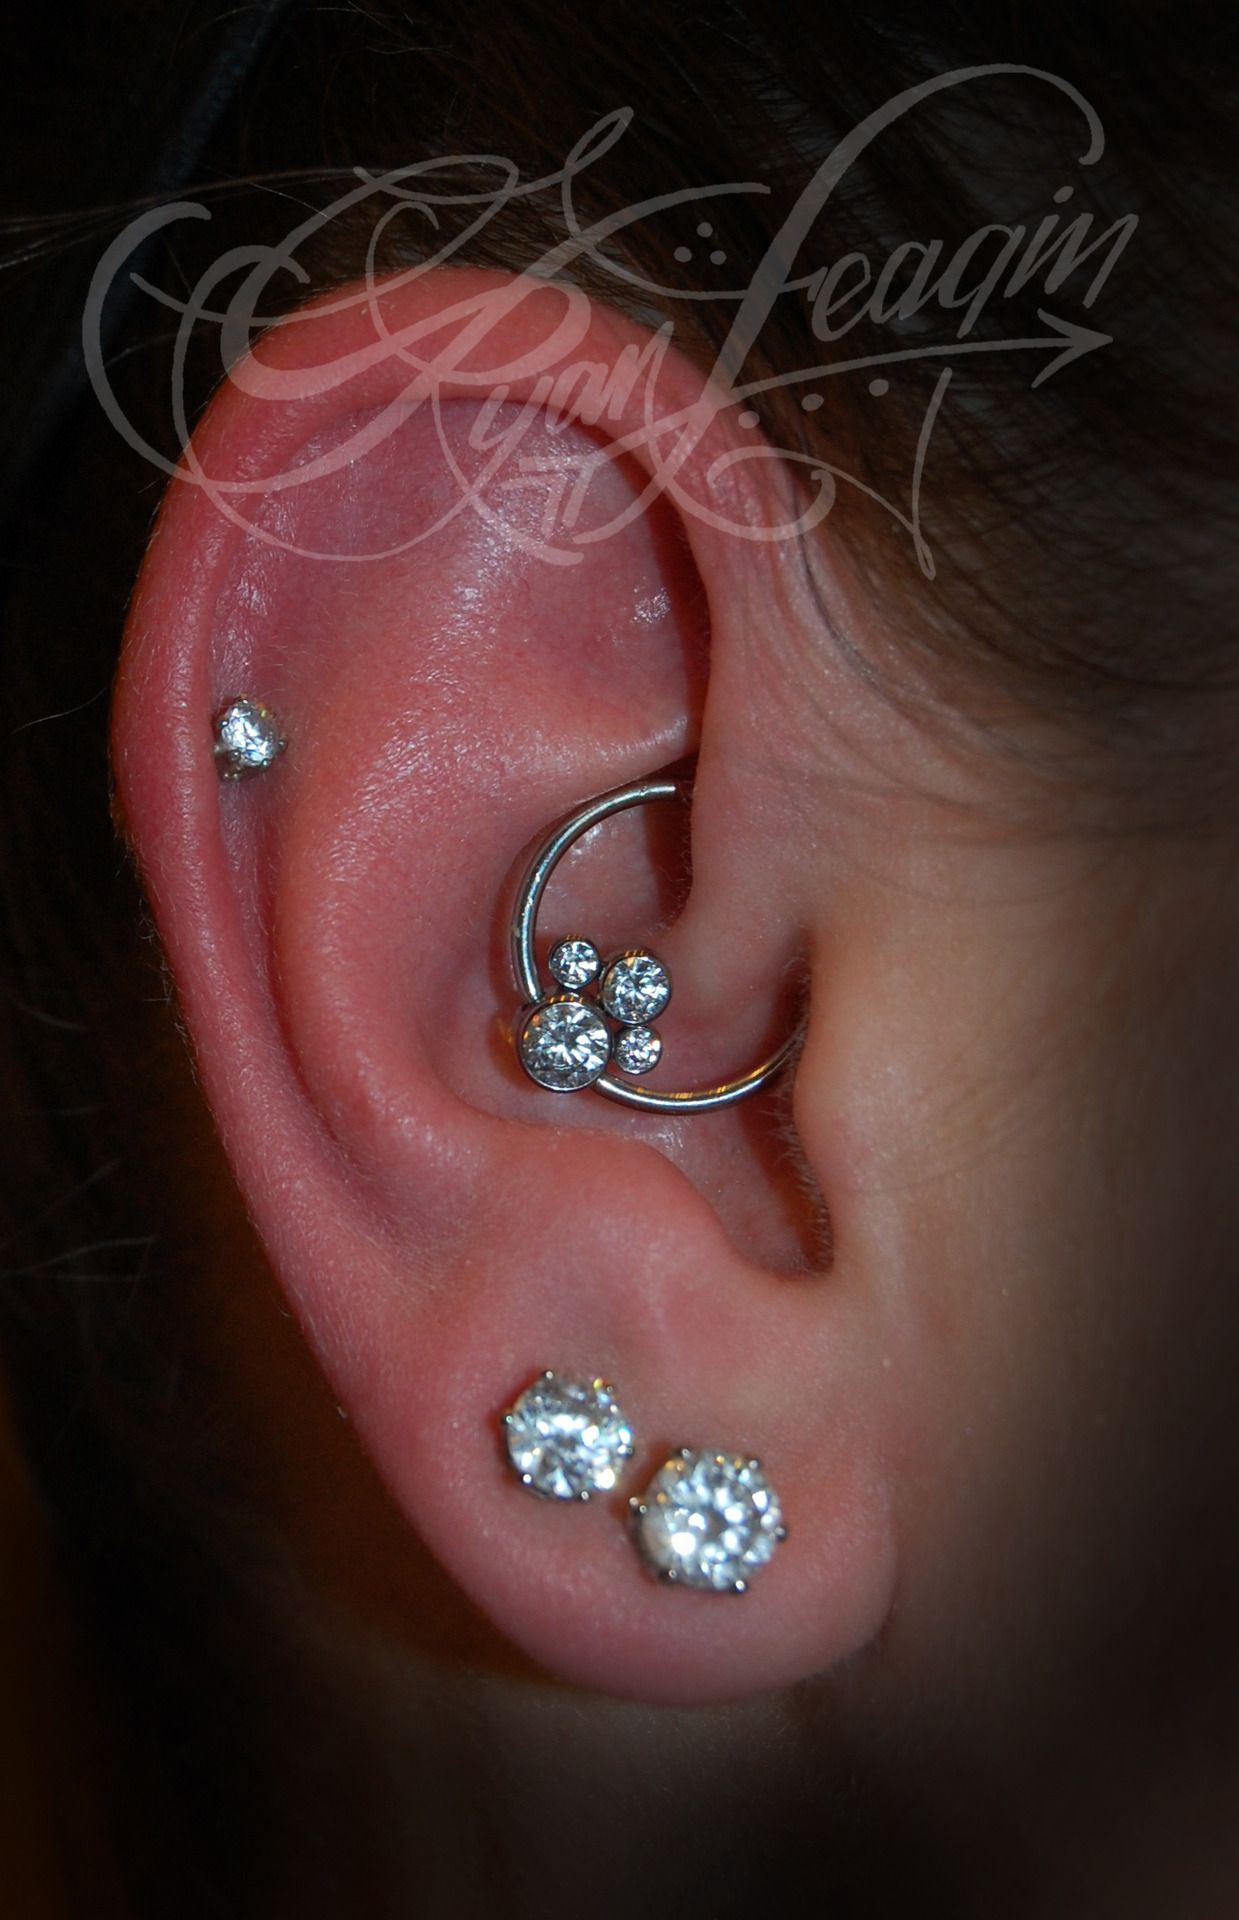 Earring piercing ideas  Pin by Katie on PiercingsStretched Ears  Pinterest  Piercings